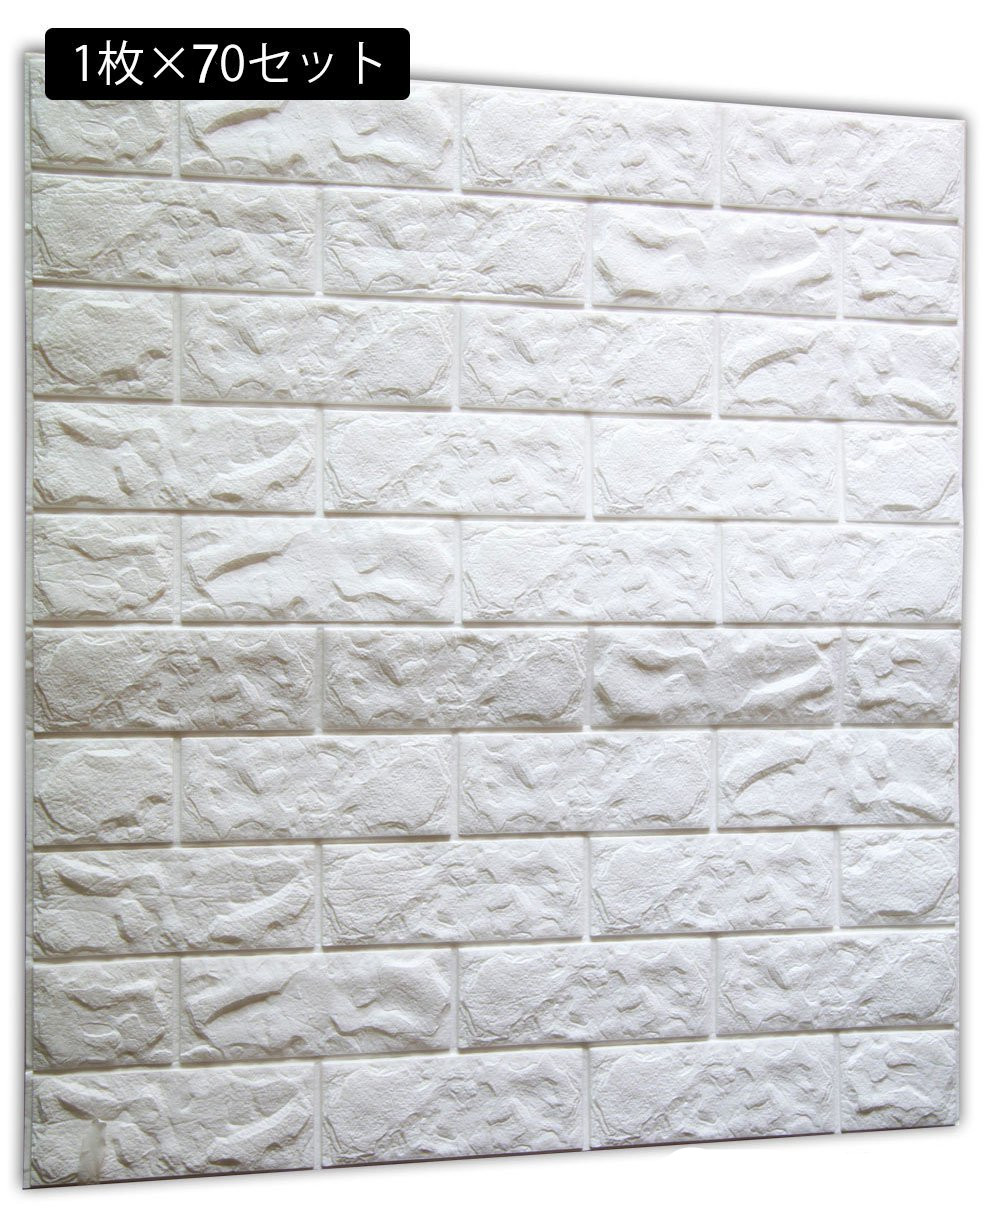 70 pcs PE Foam 3D Wallpaper DIY Wall Stickers Wall Decor Embossed Brick Stone Brick pattern 3D Textured PE Foam Wallpaper Wall цена 2017